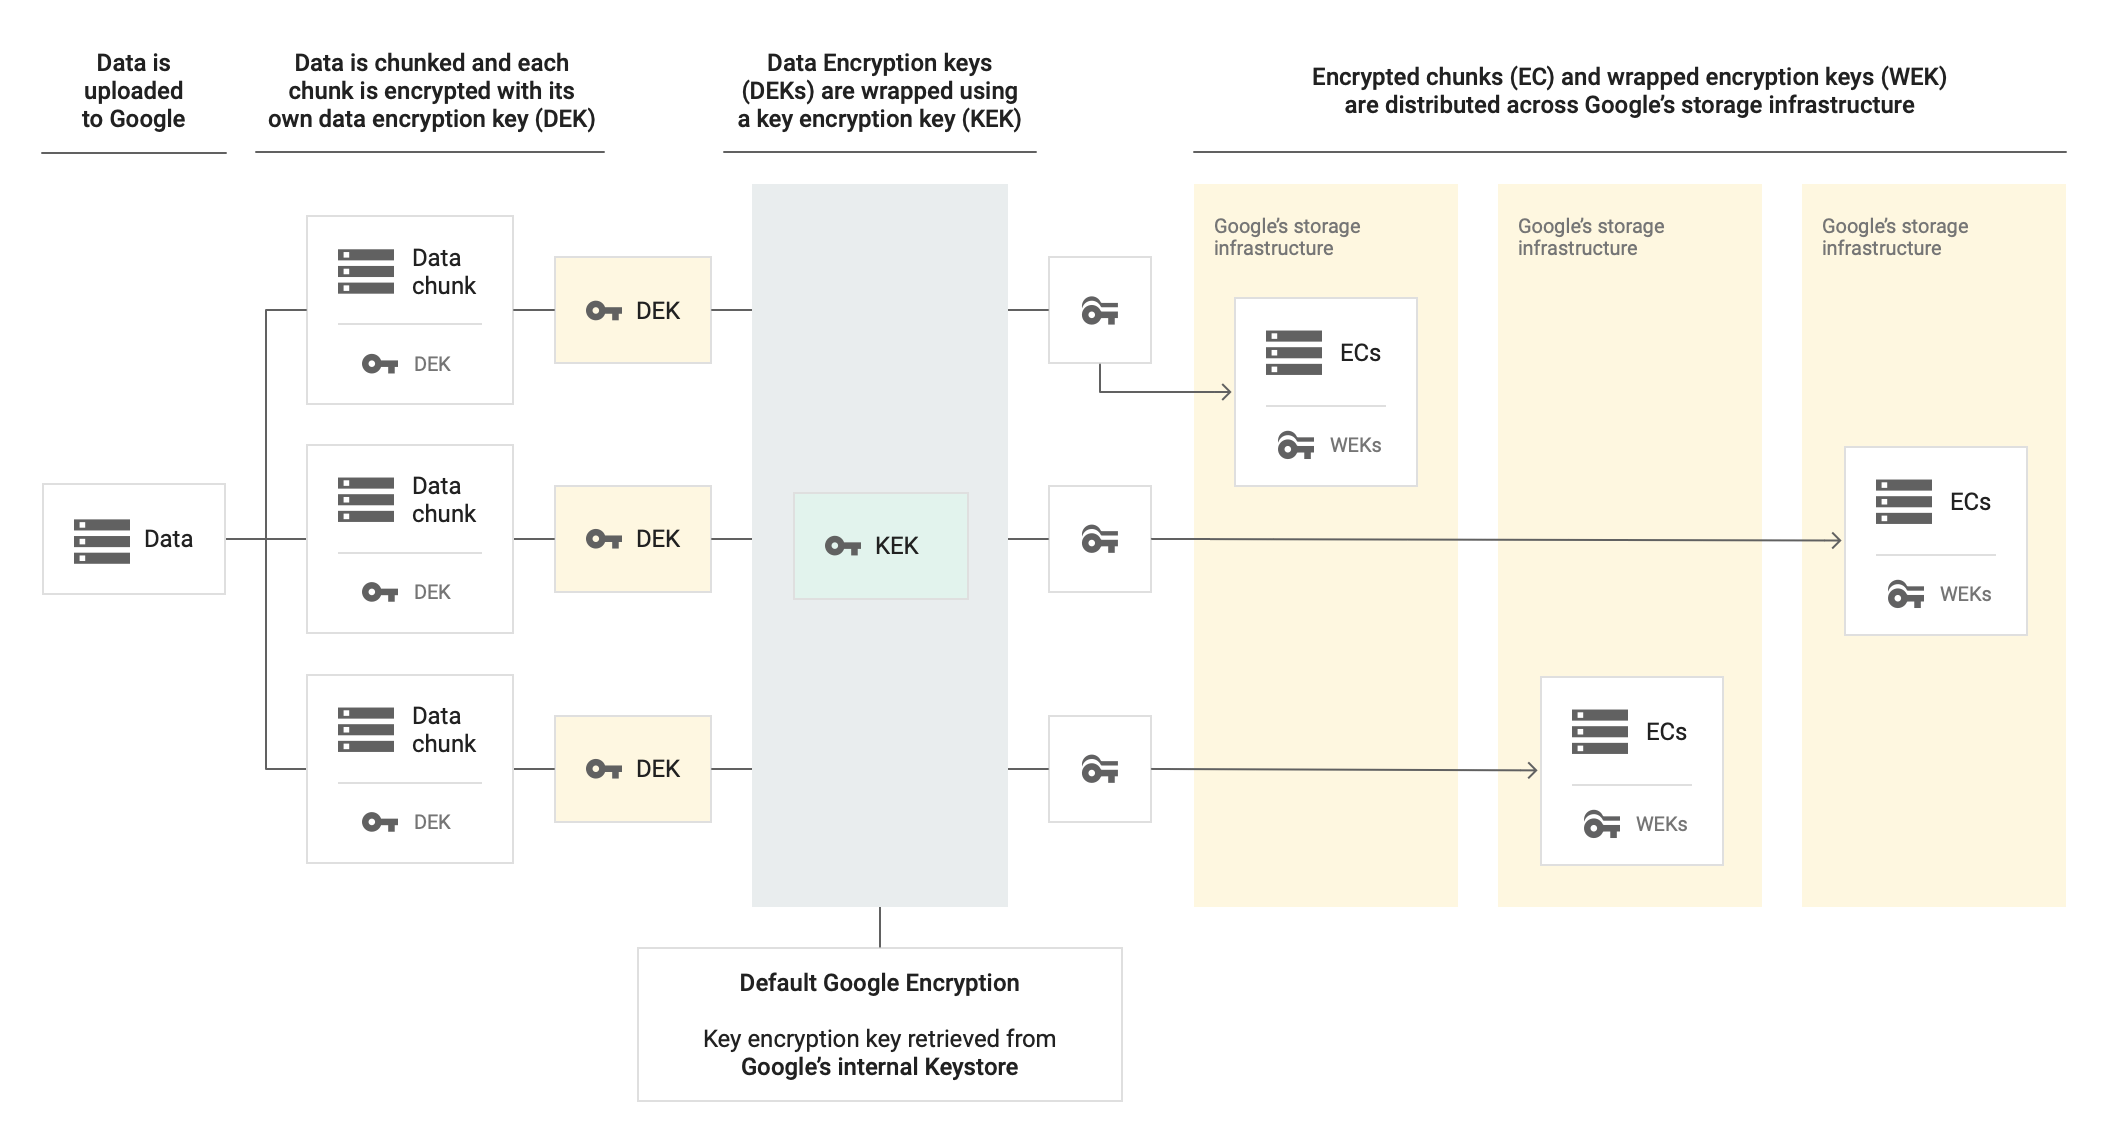 Data is uploaded to Google, then chunked and each chunk is encrypted with its own data encryption key. Data Encryption keys are wrapped using a key encryption key. With default Google Encryption, the key encryption key is retrieved from Google's internal Keystore. Encrypted chunks and wrapped encryption keys are distributed across Google's storage infrastructure.